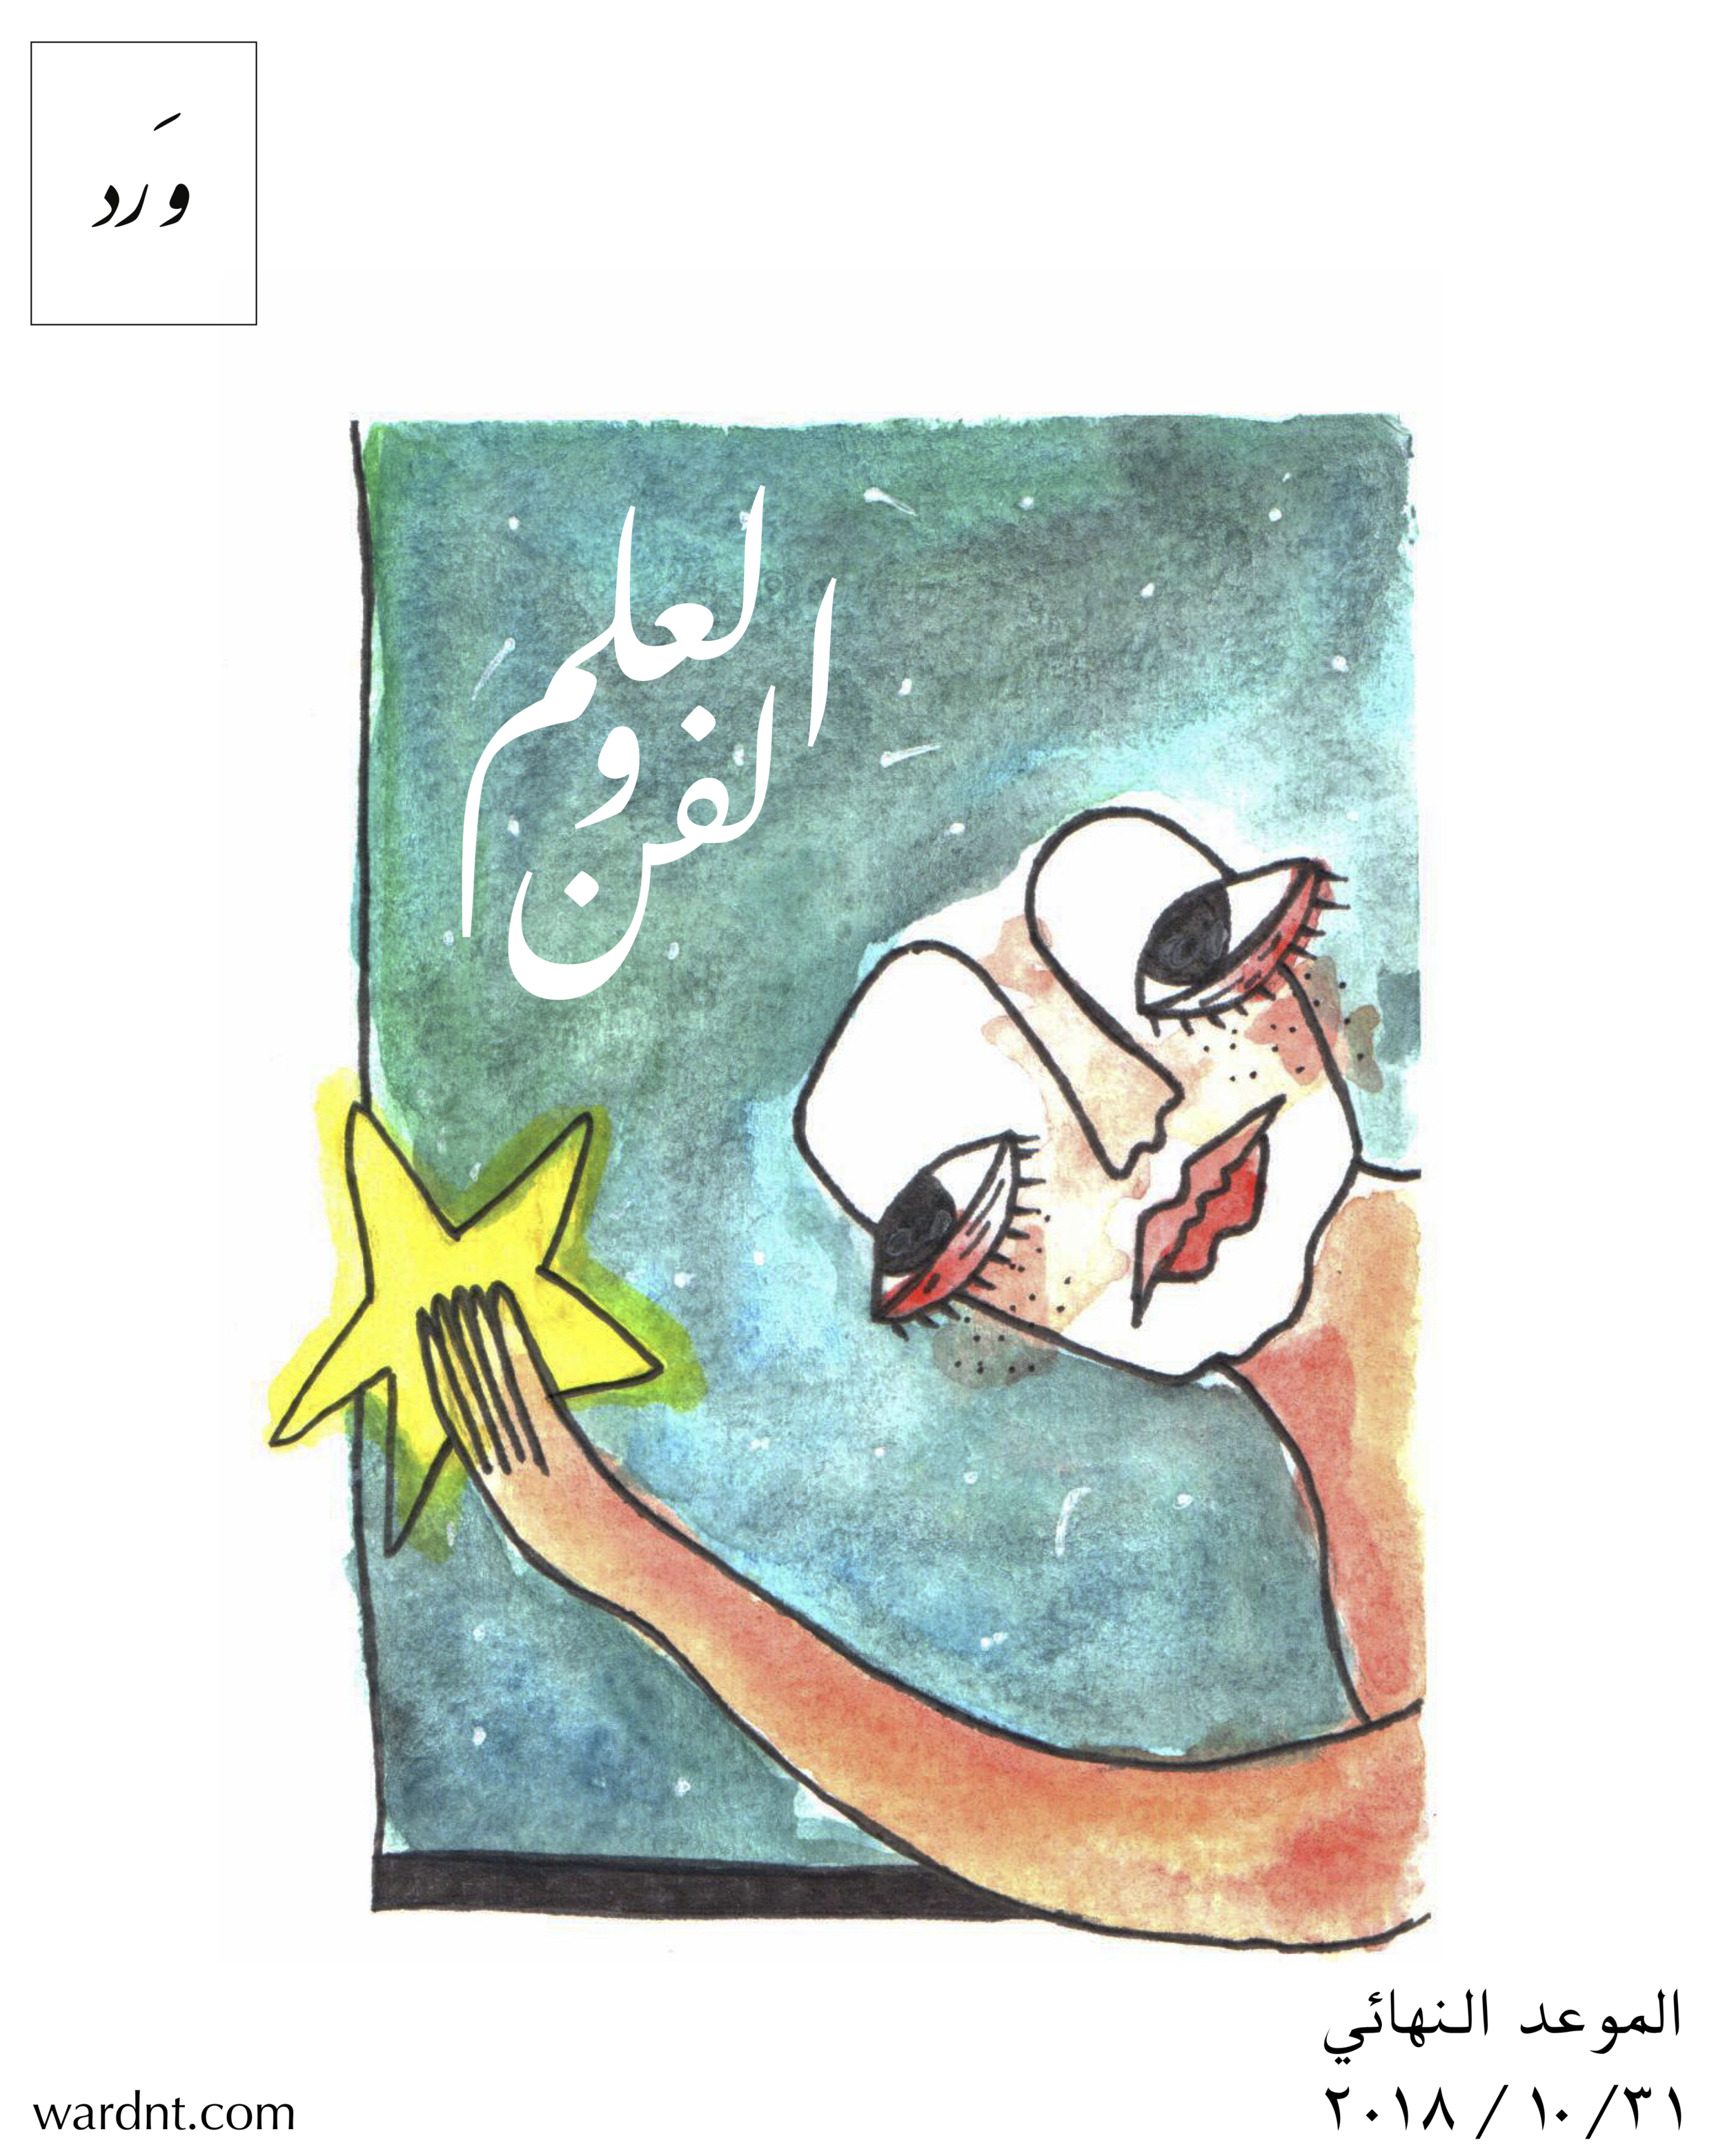 art and science - arabic.png